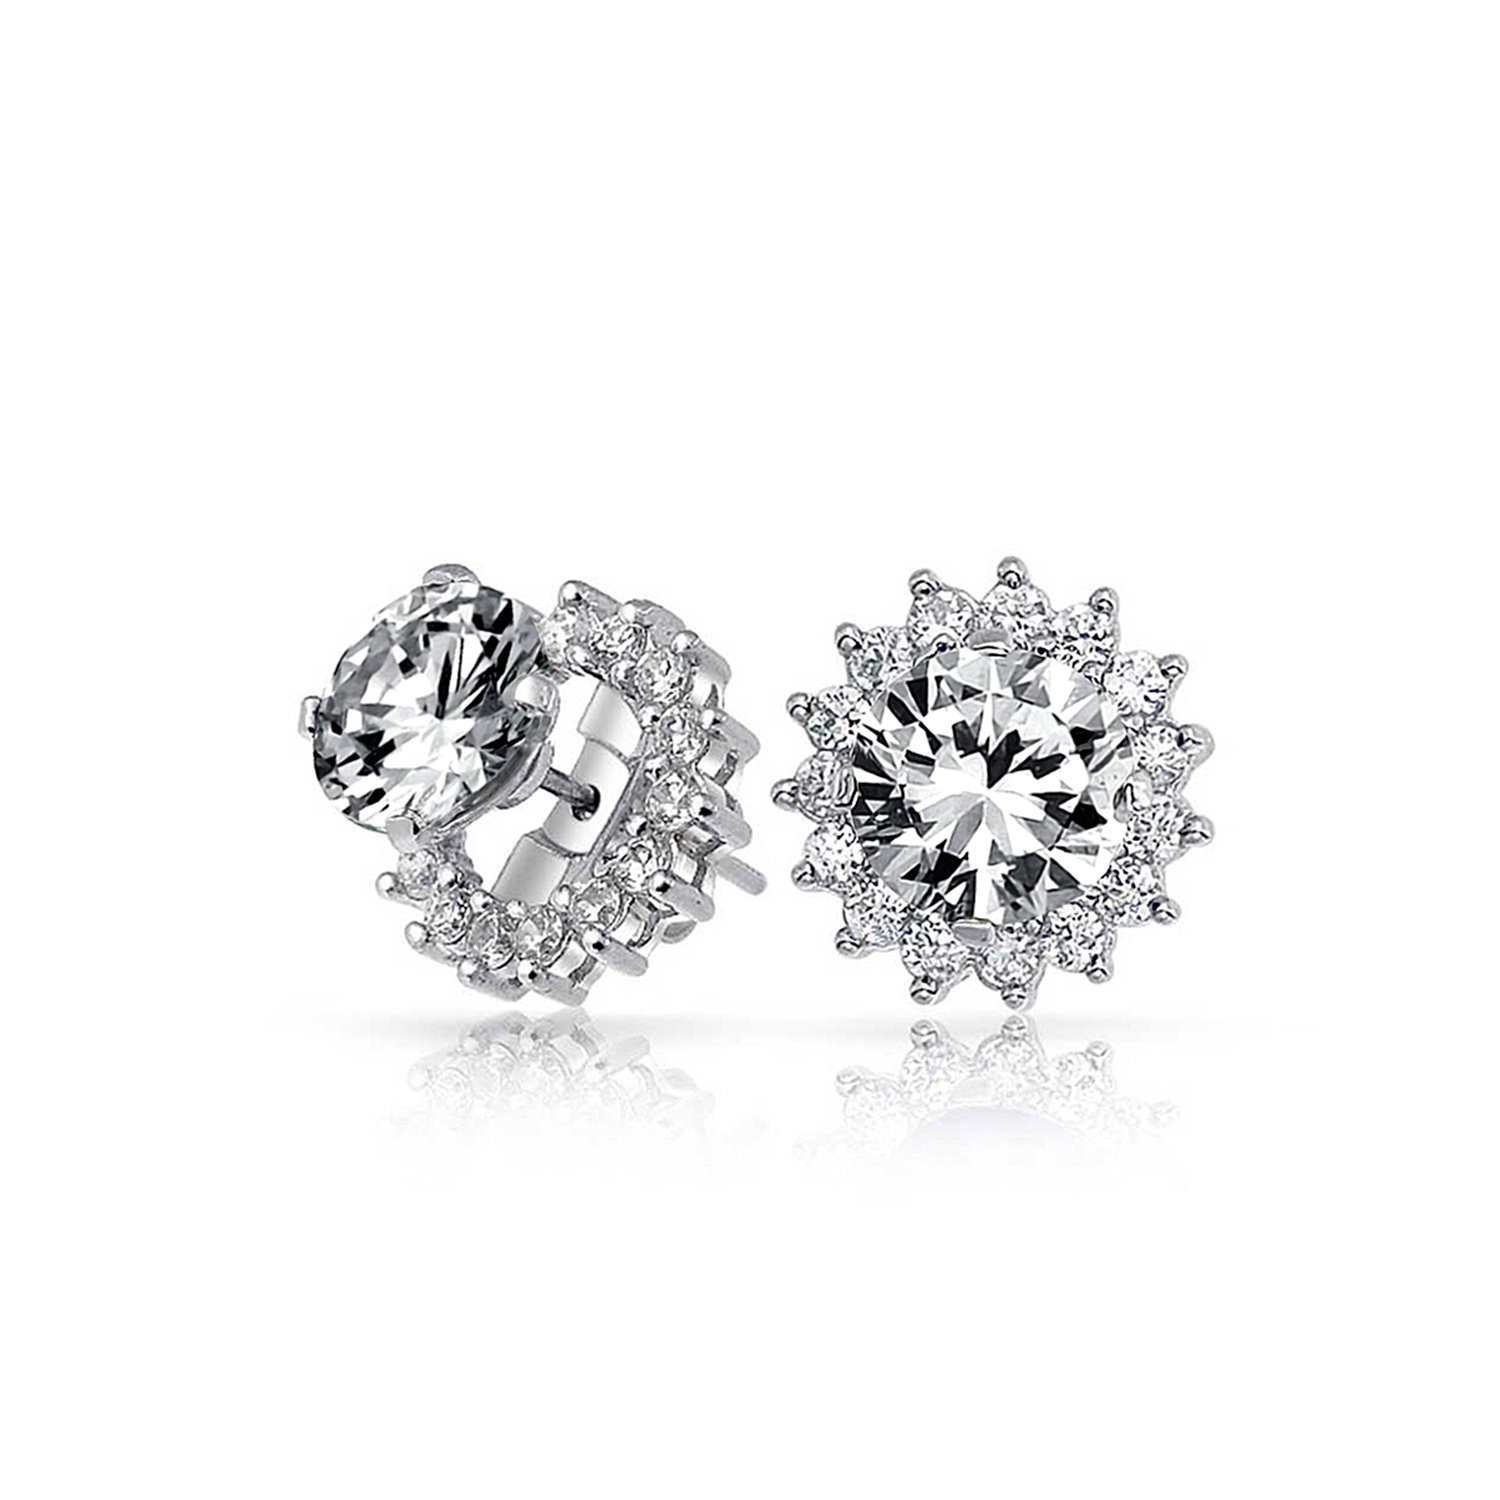 Brilliant Cut 1 CT CZ Solitaire Removable Cubic Zirconia Halo Jacket CZ Stud Earrings For Women 925 Sterling Silver